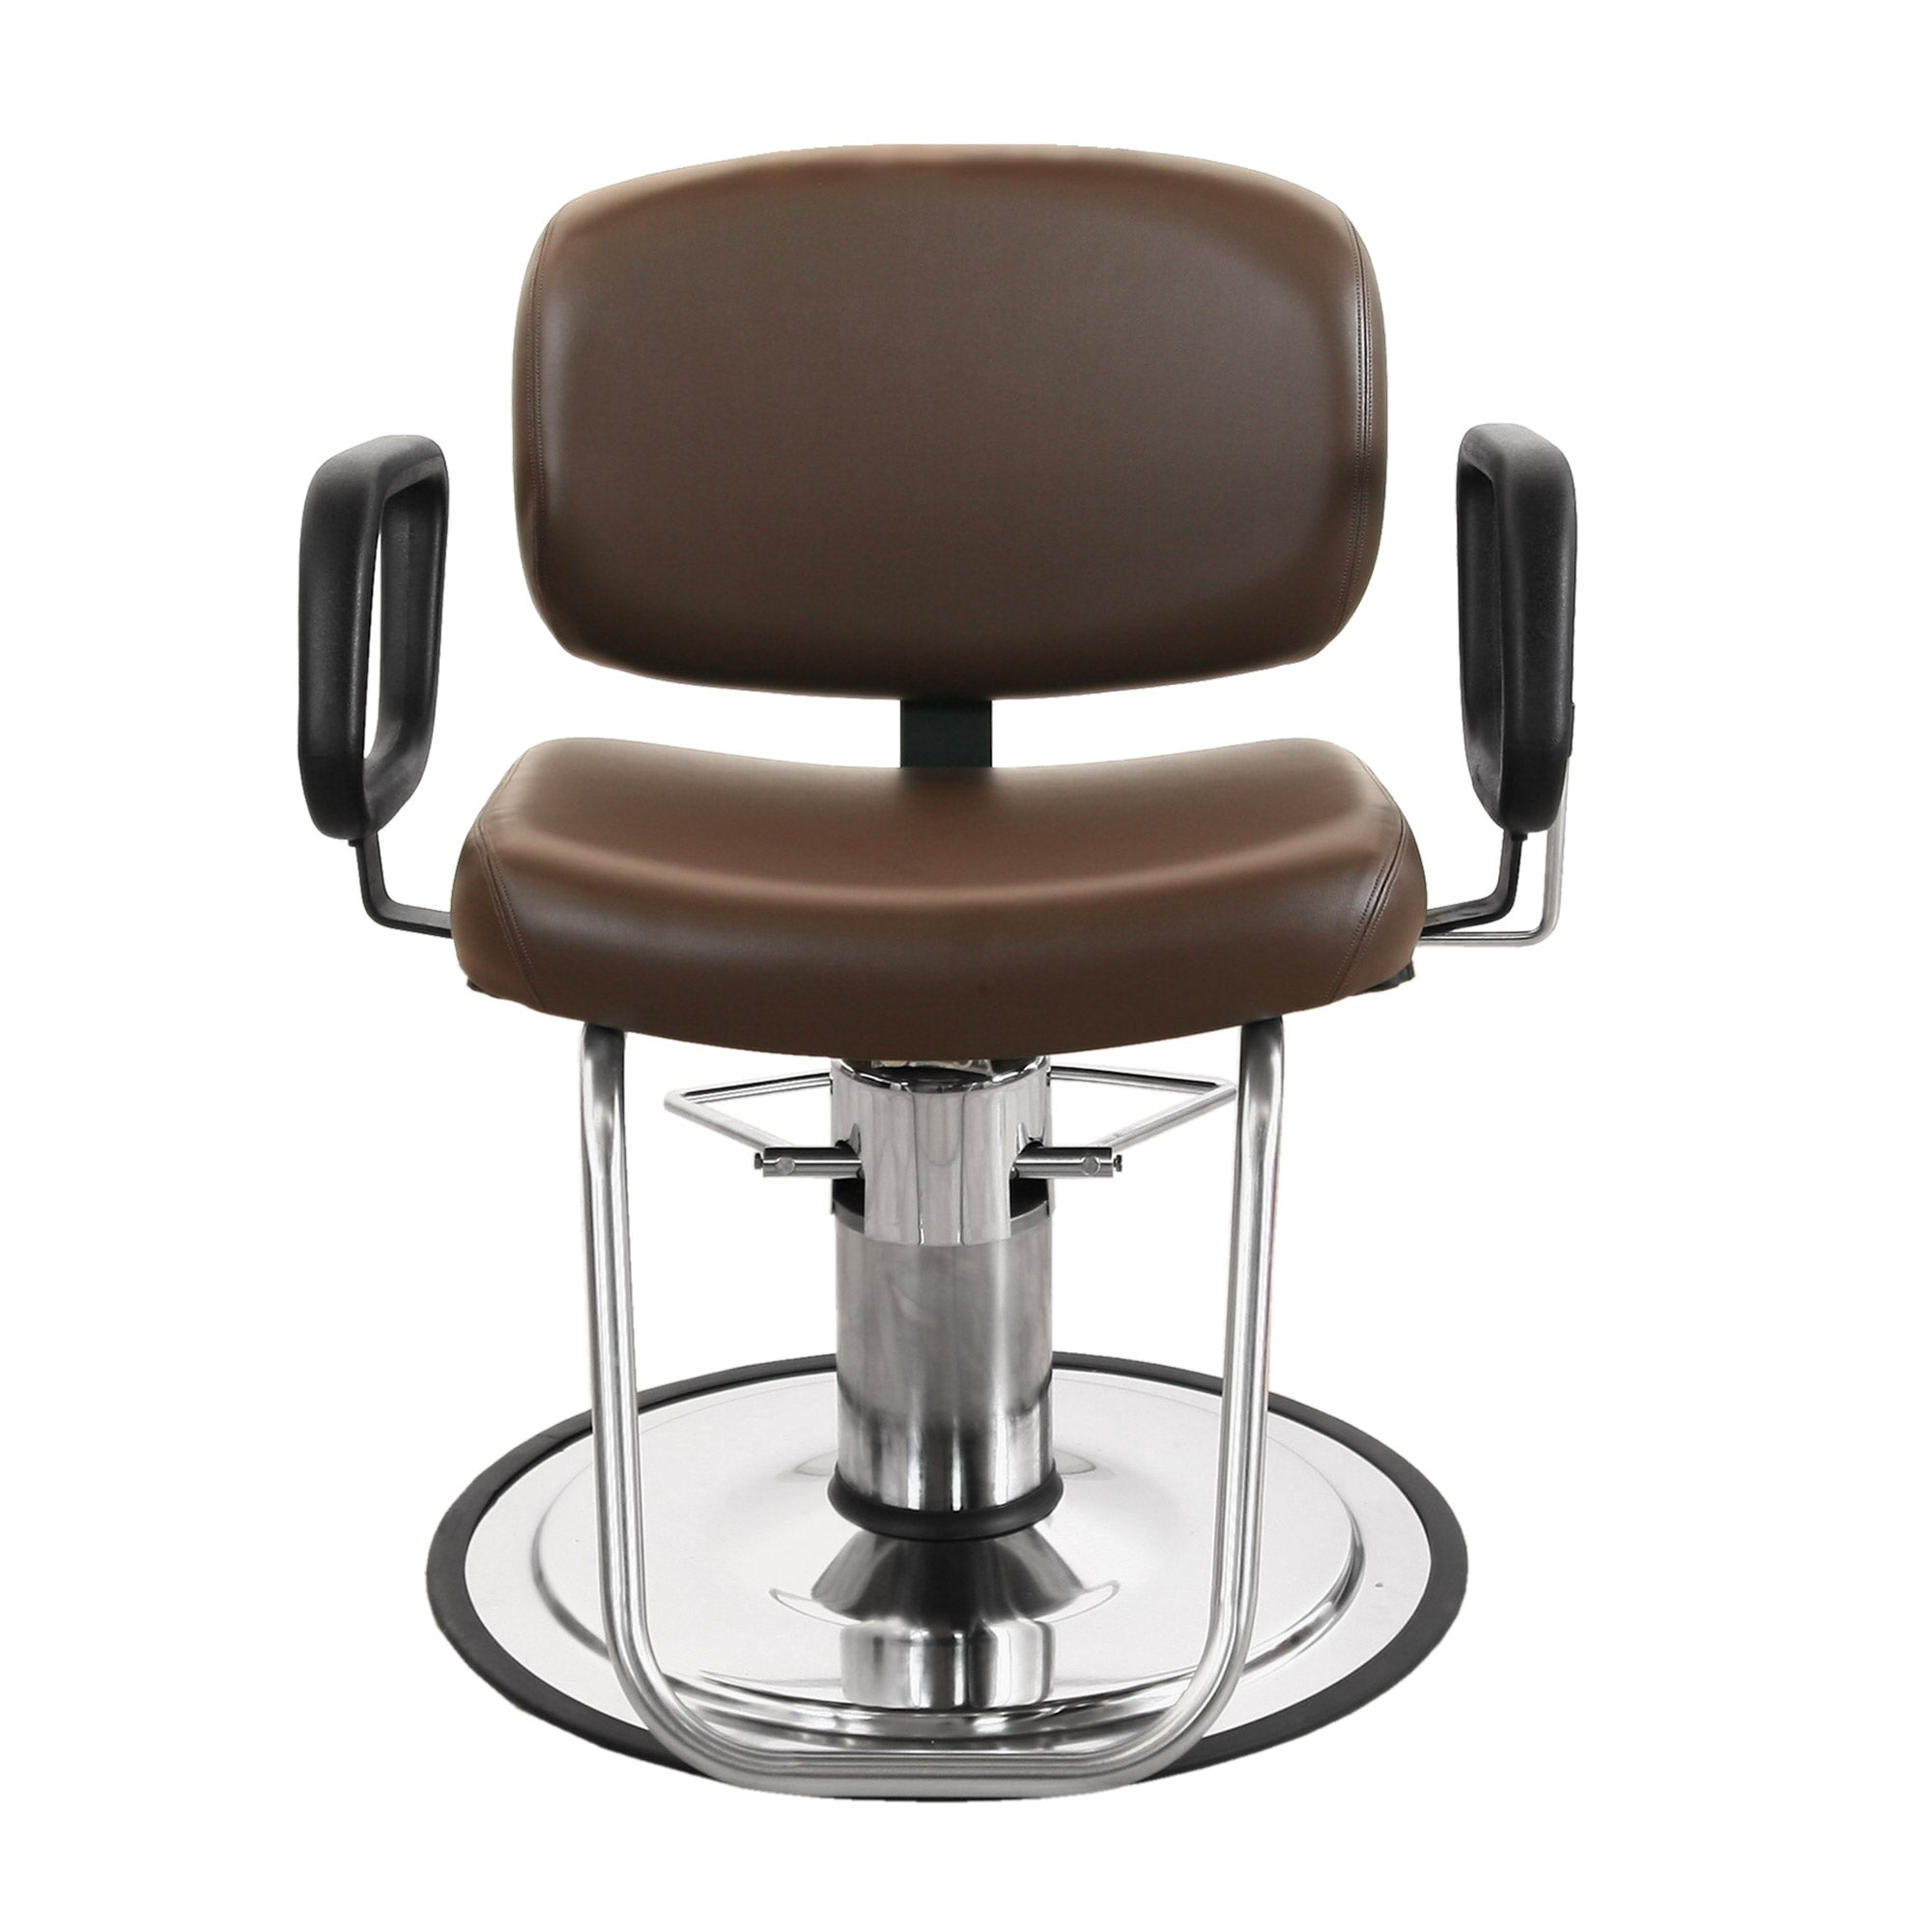 Maxi All-Purpose Chair - Collins